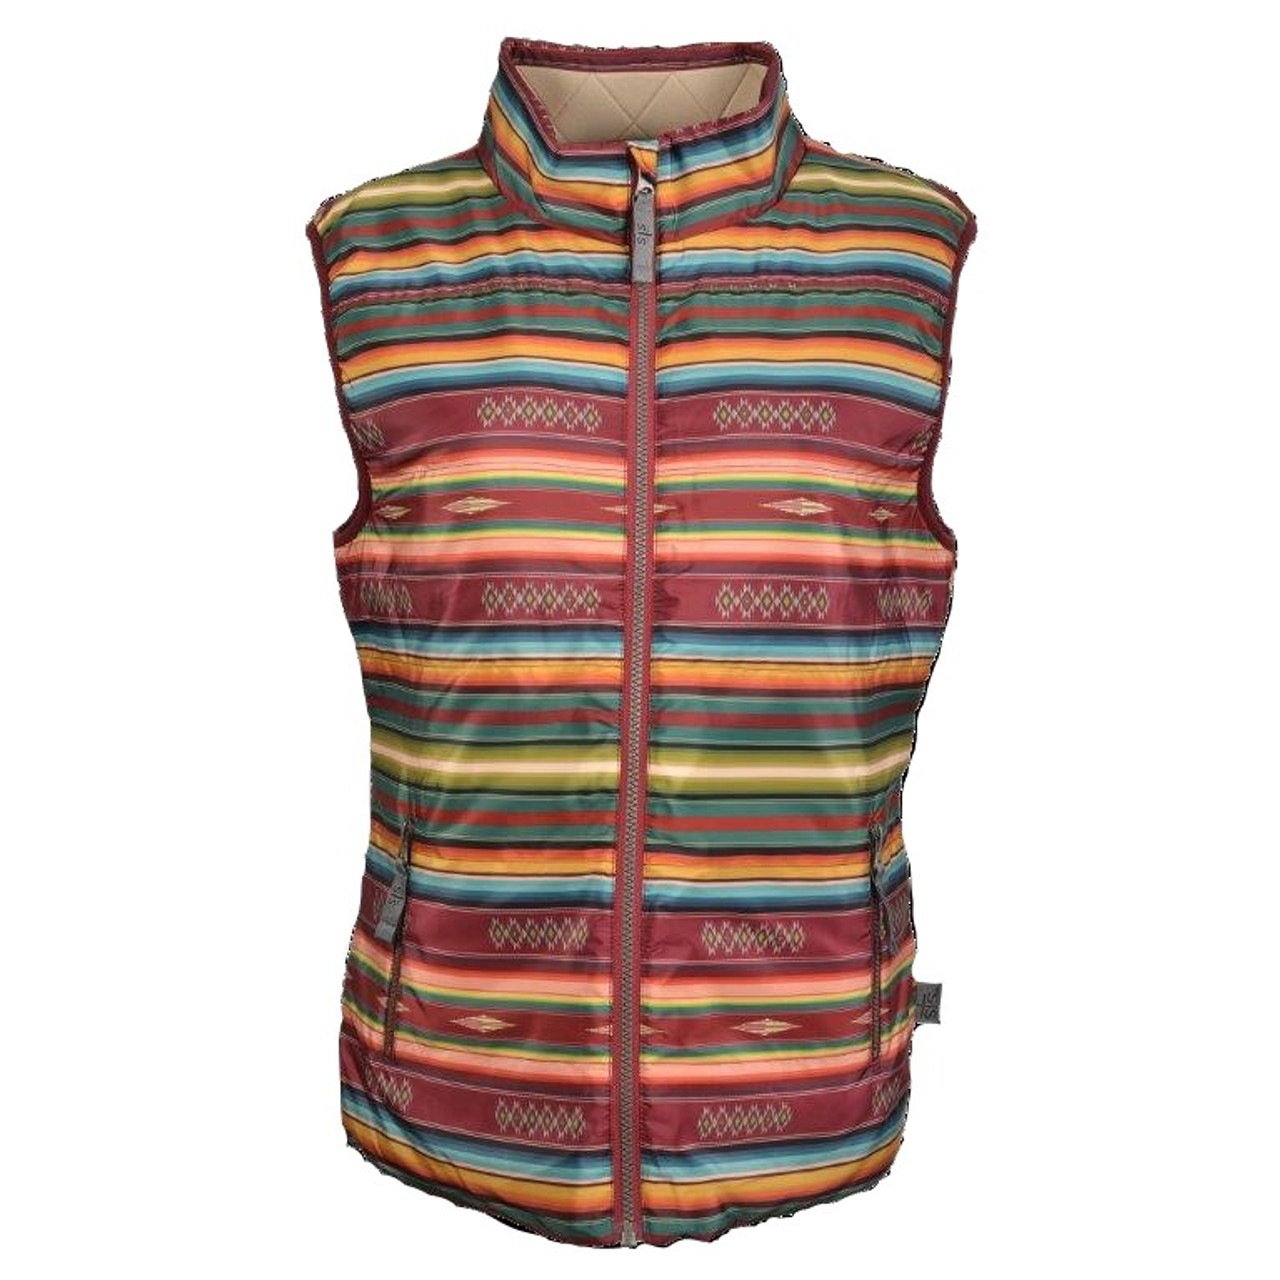 e3b2262259af sTs Ranchwear Women's Vest - The Sealy - Maroon Serape